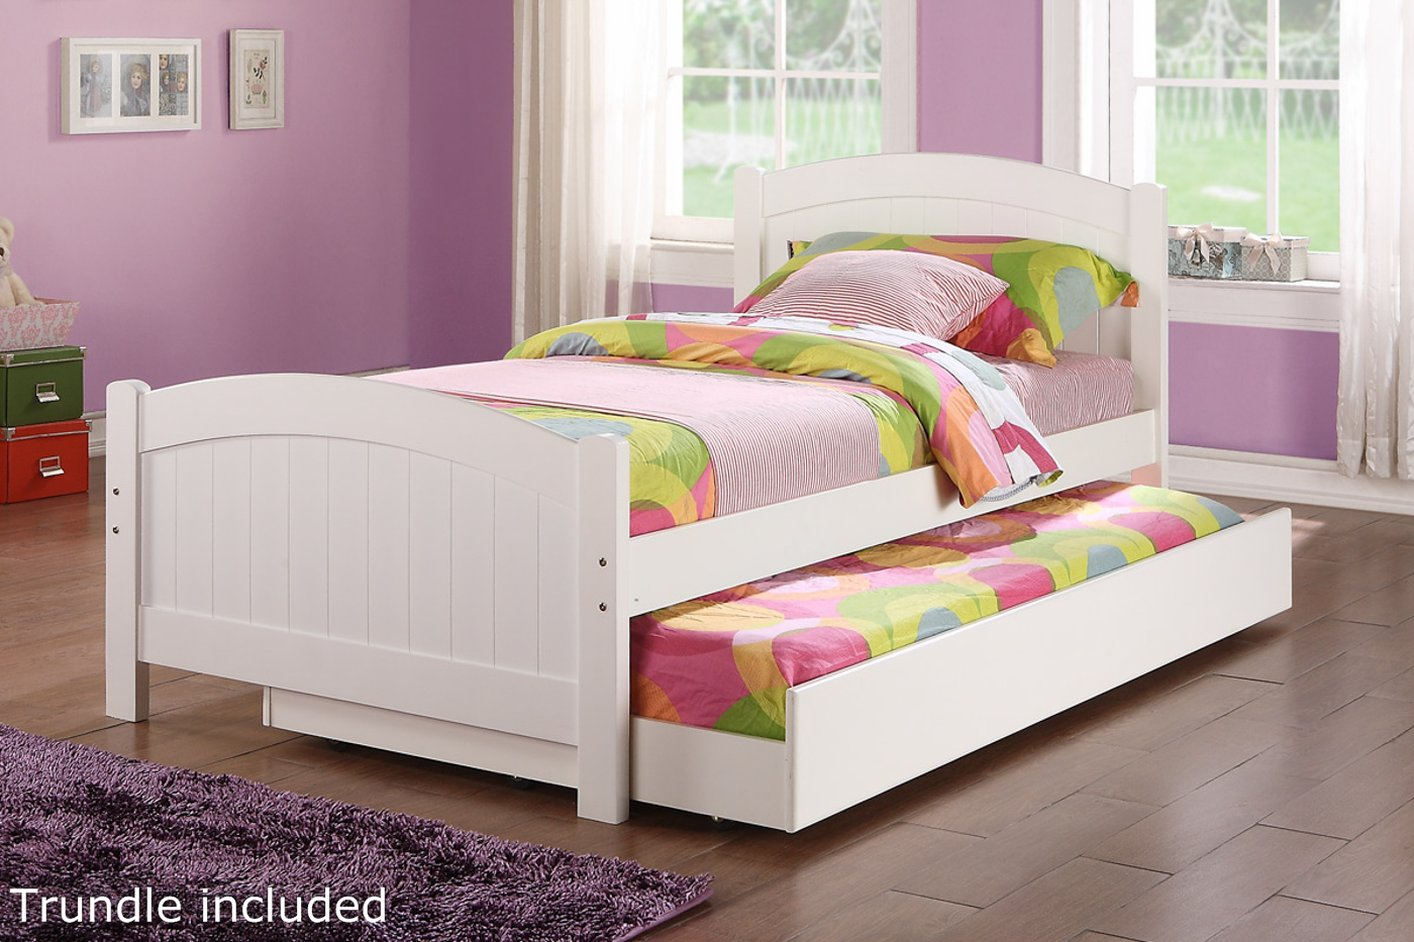 White Wood Twin Size Bed Steal A Sofa Furniture Outlet